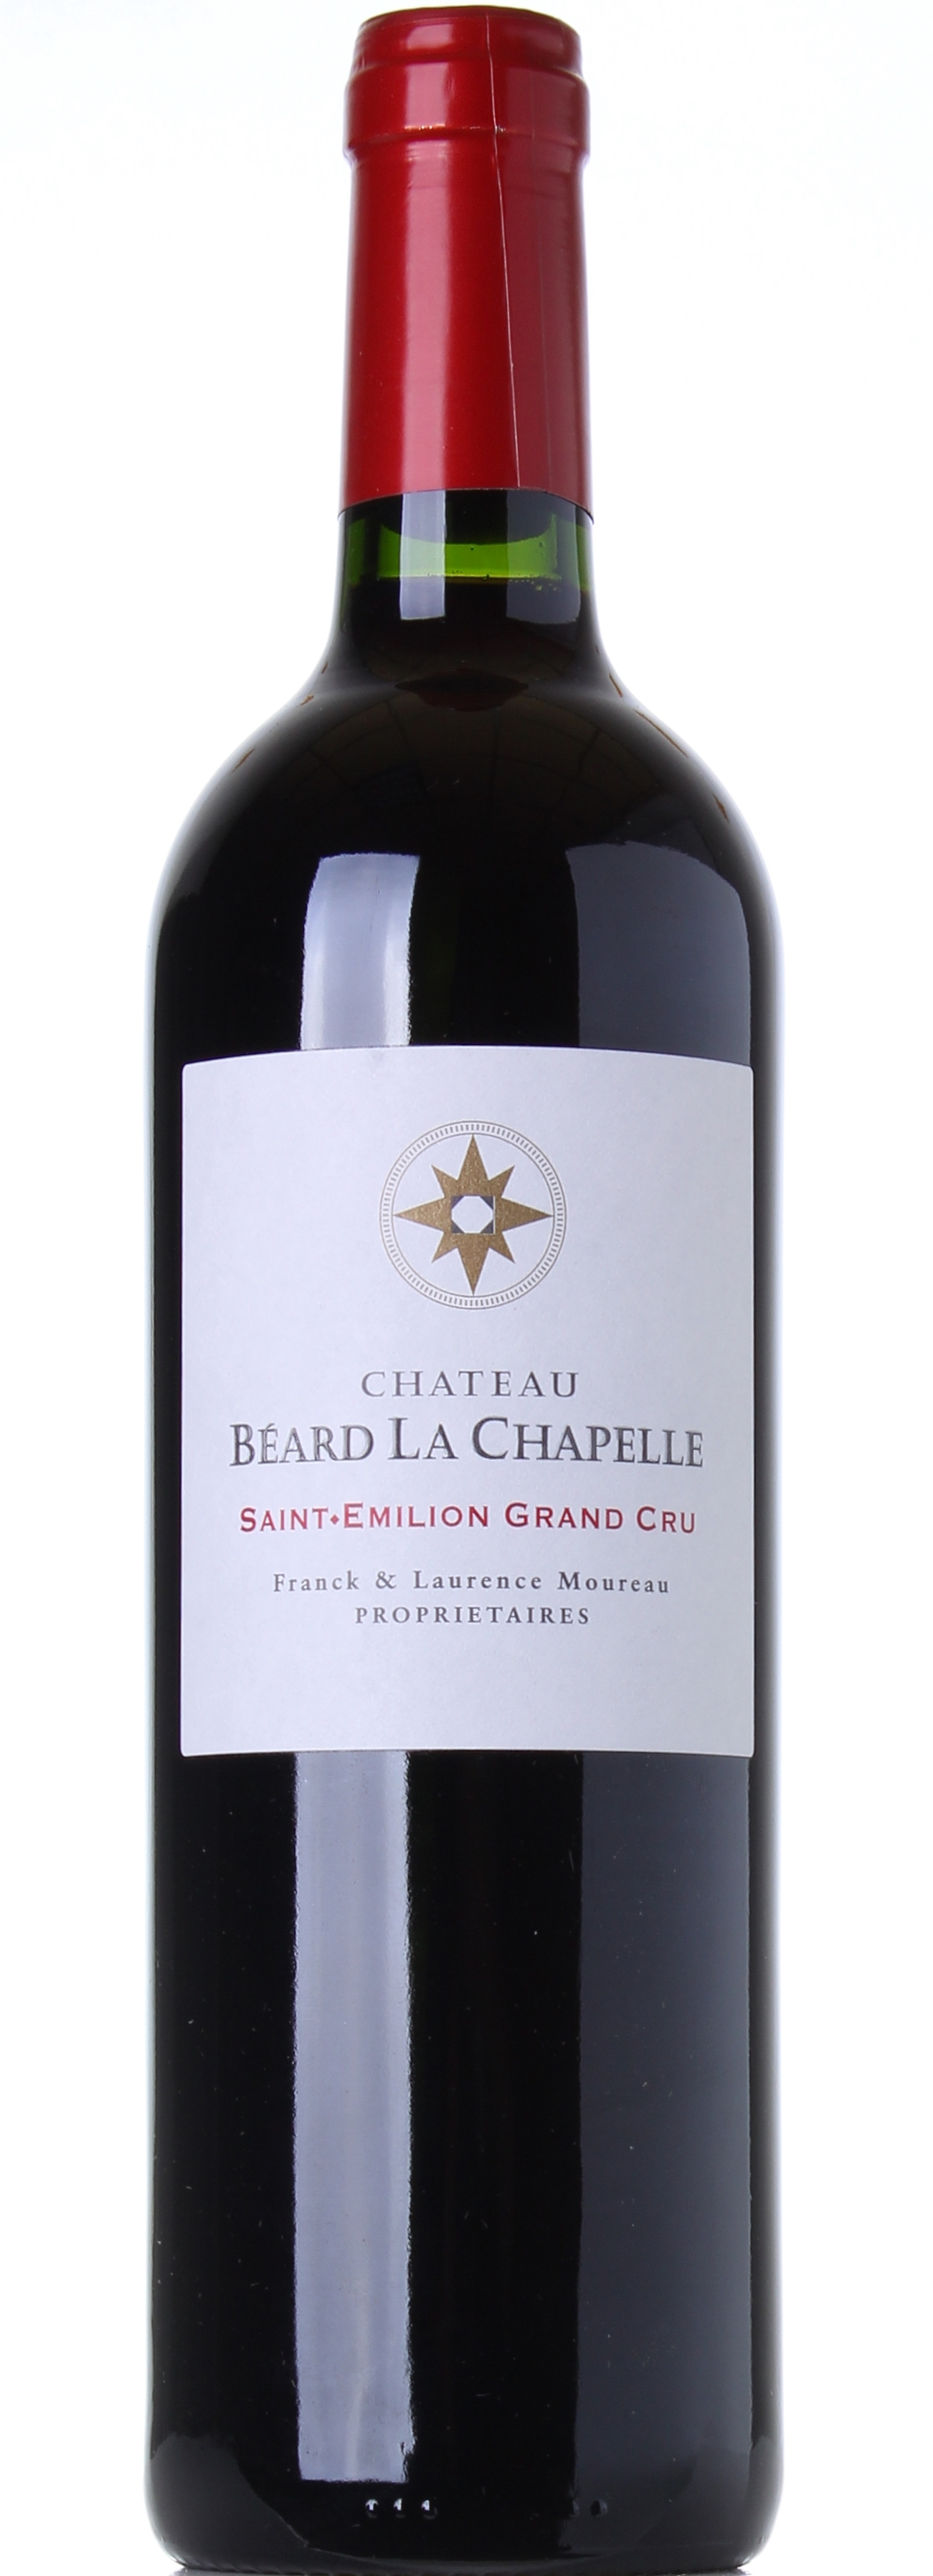 CHATEAU BEARD LA CHAPELLE 2010